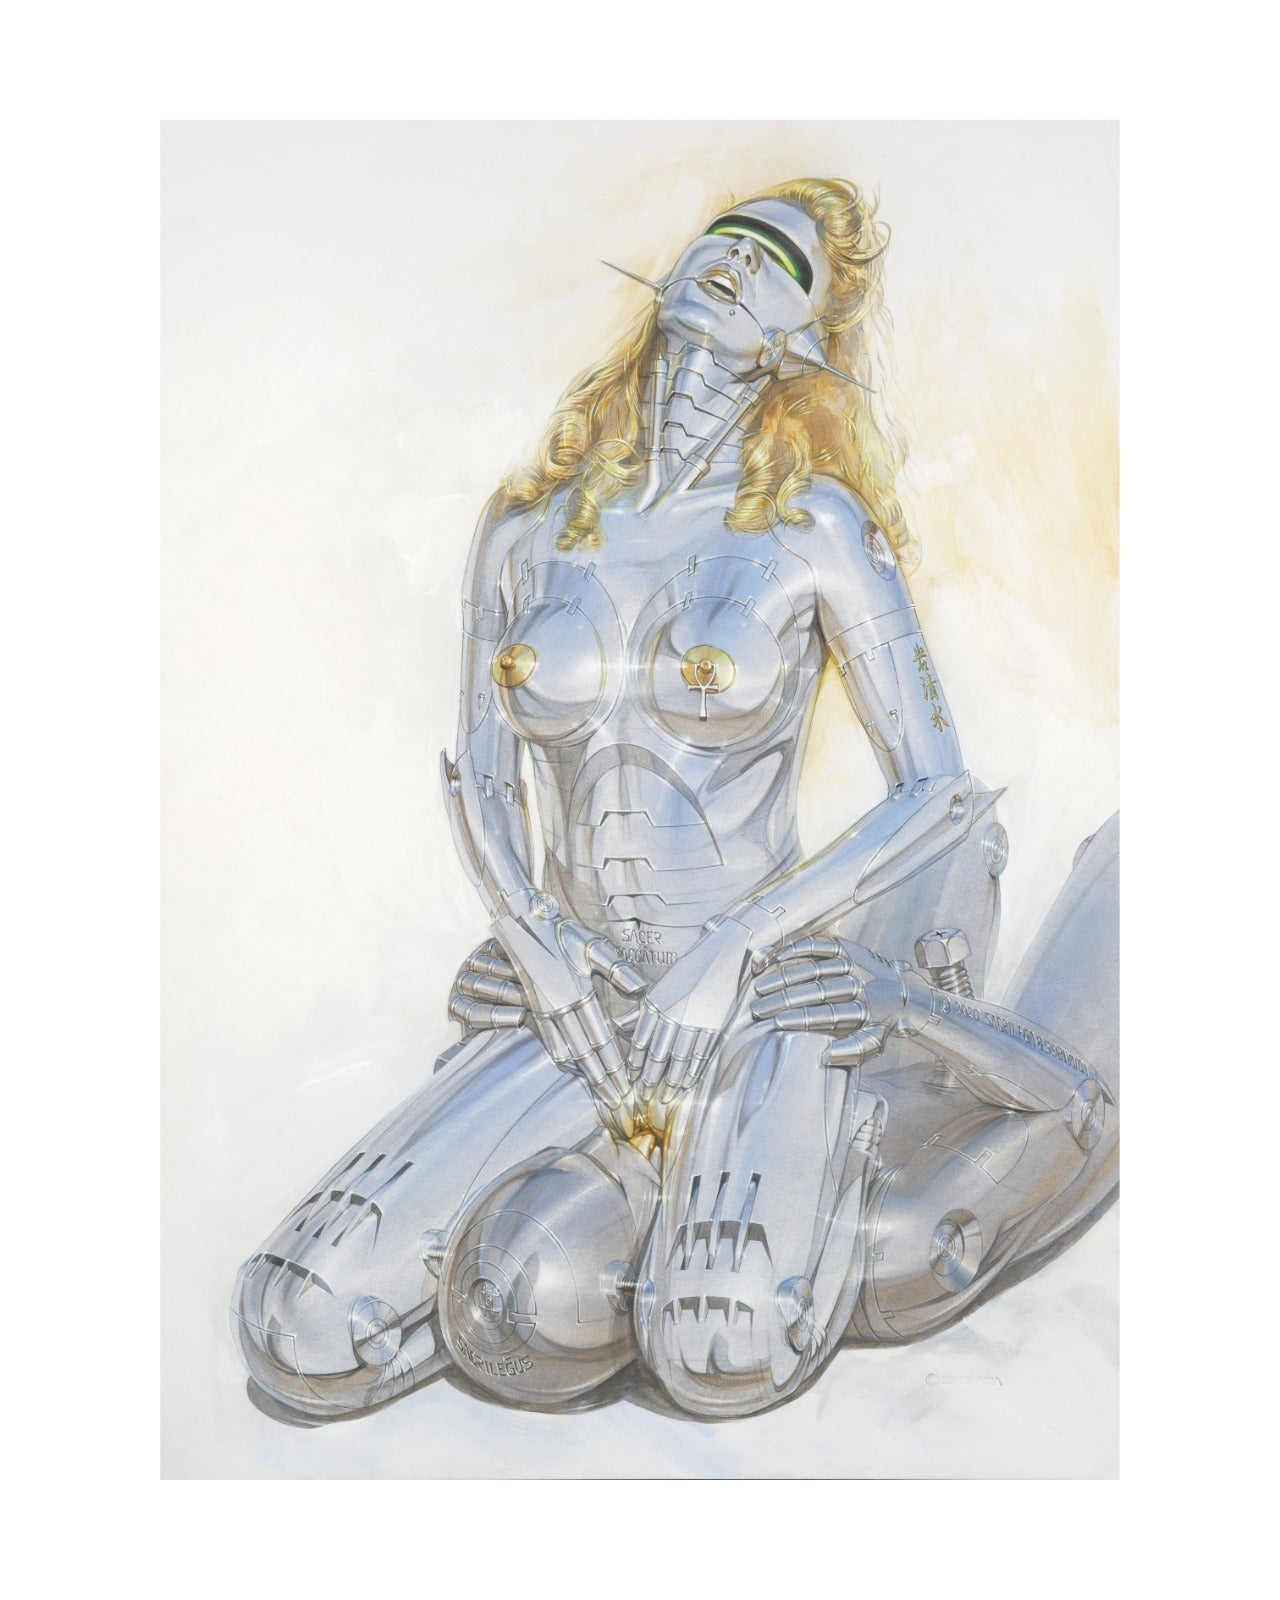 Image of EXIT ISSUE 40 SPRING SUMMER 2020 HAJIMI SORAYAMA ***SOLD OUT***